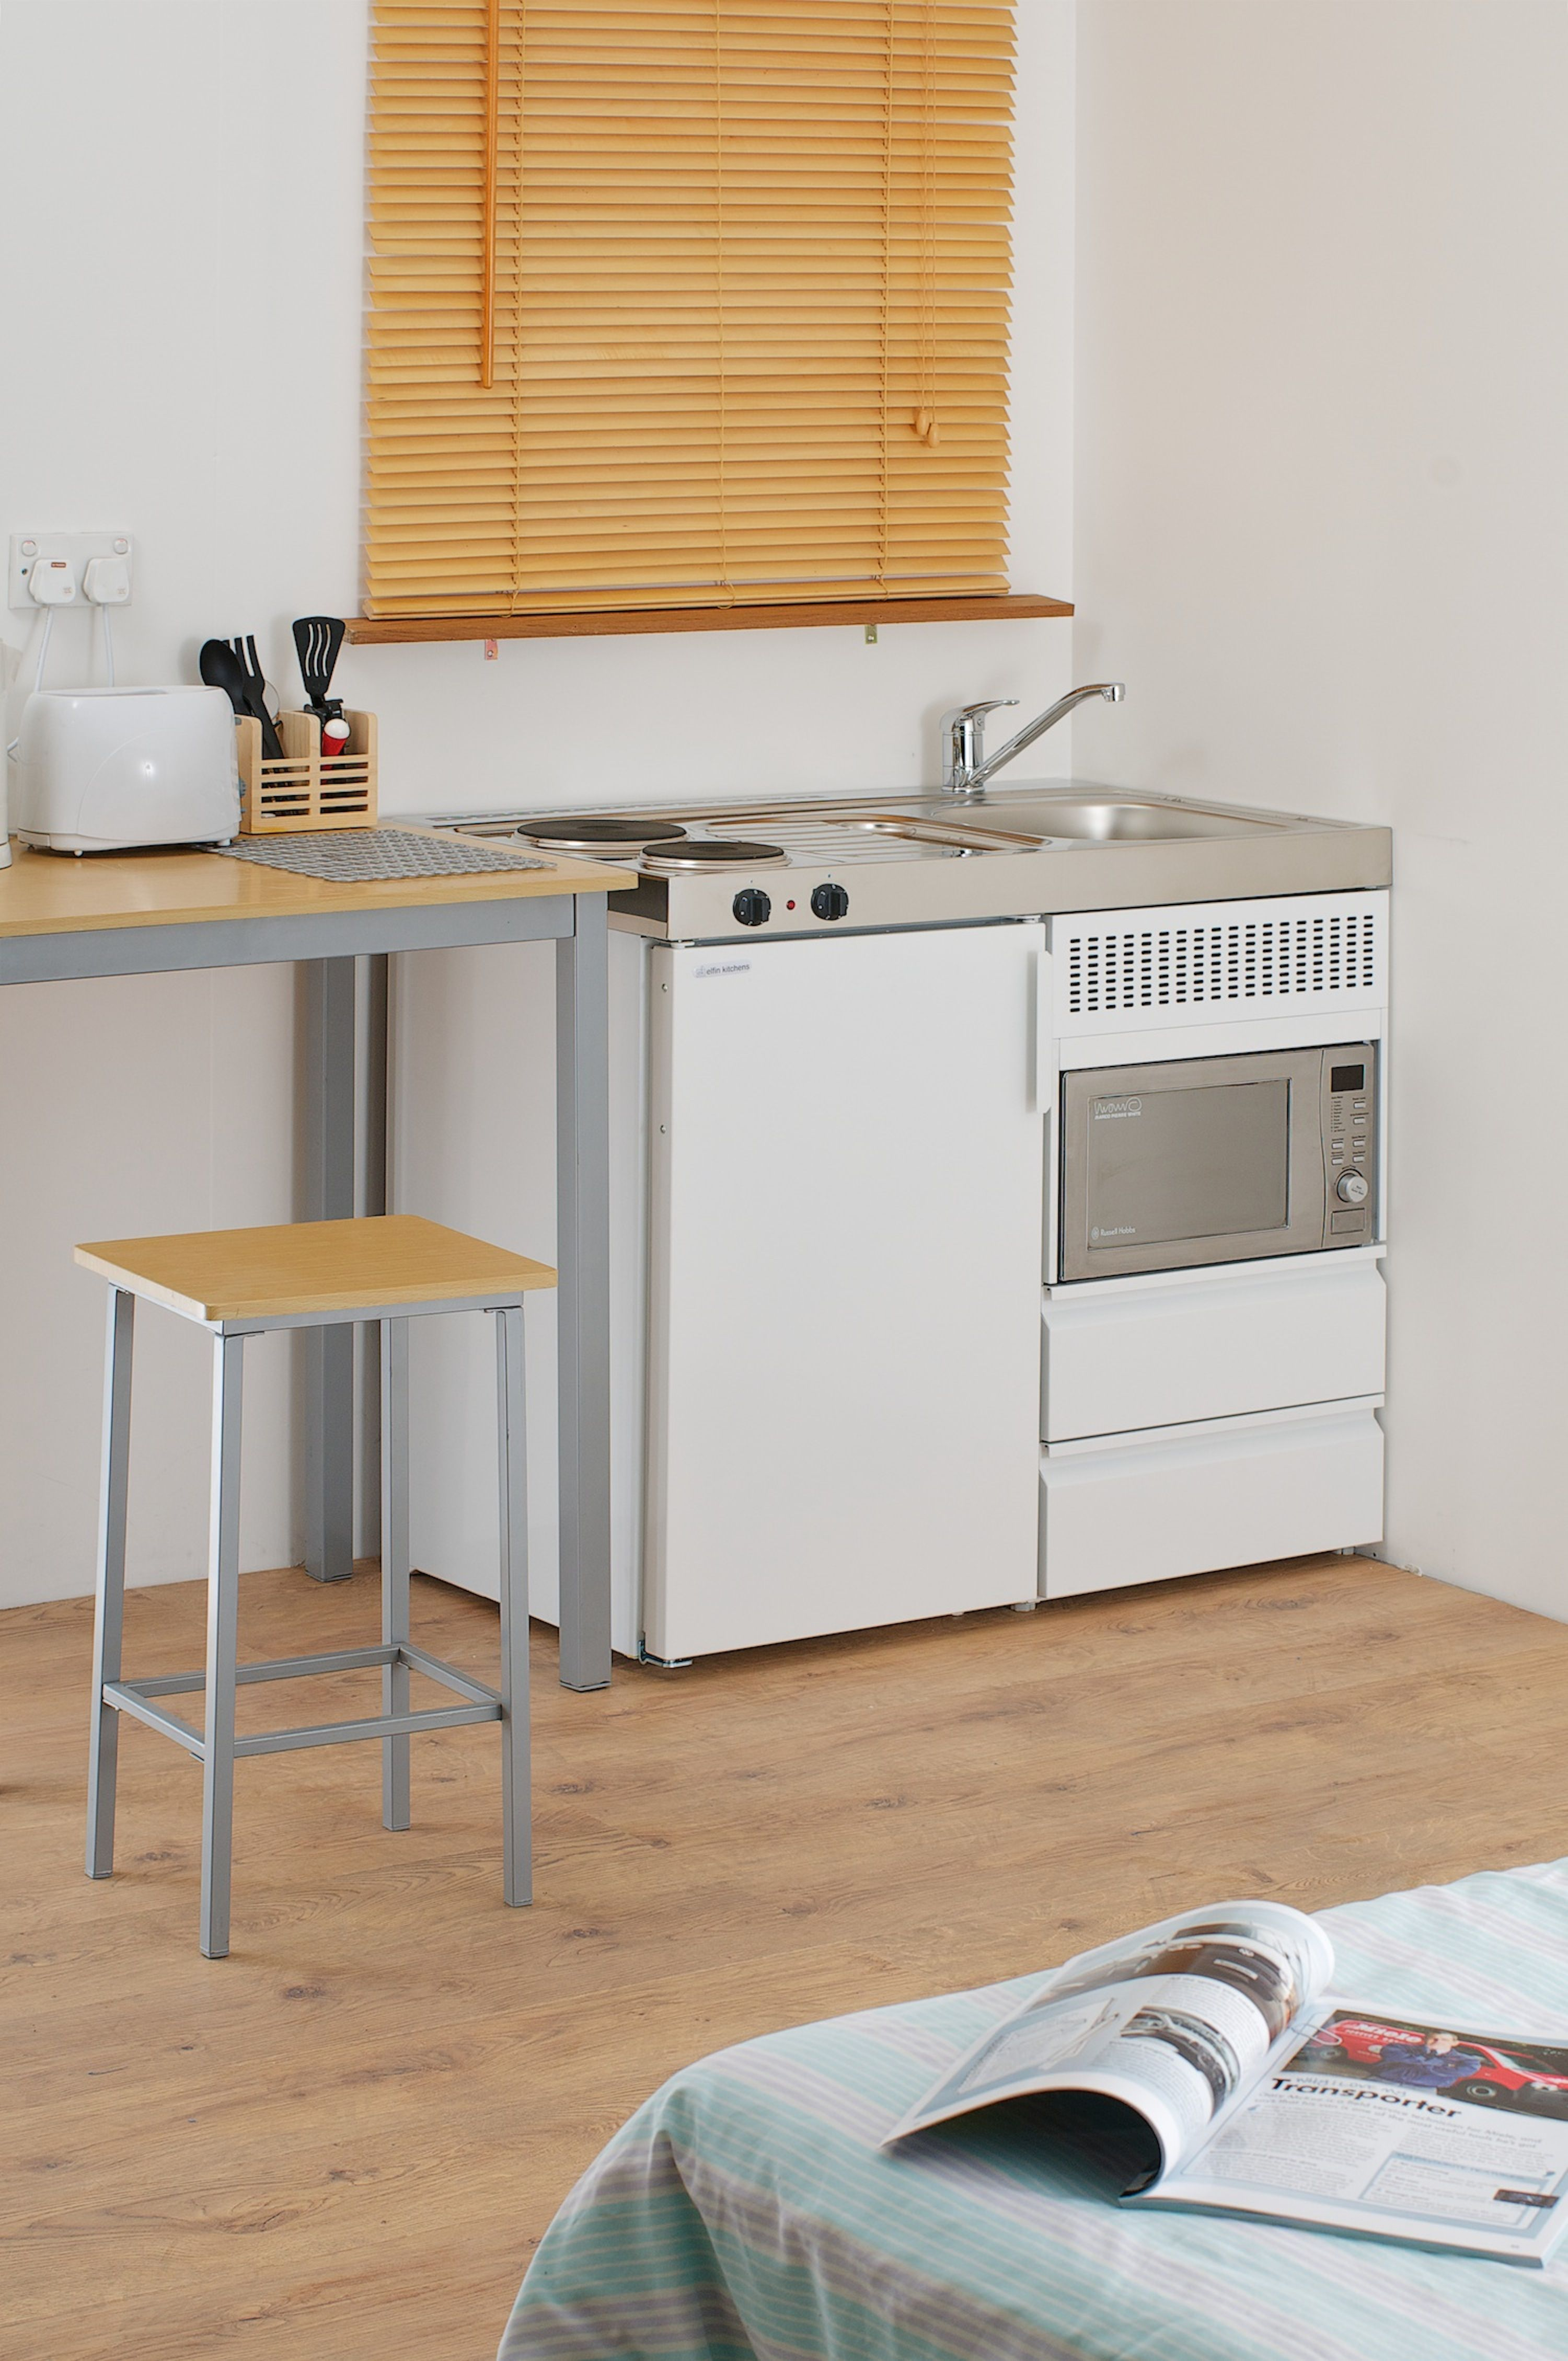 B 100 Smos Rk Economy Mini Kitchen With 20ltr Combi Oven